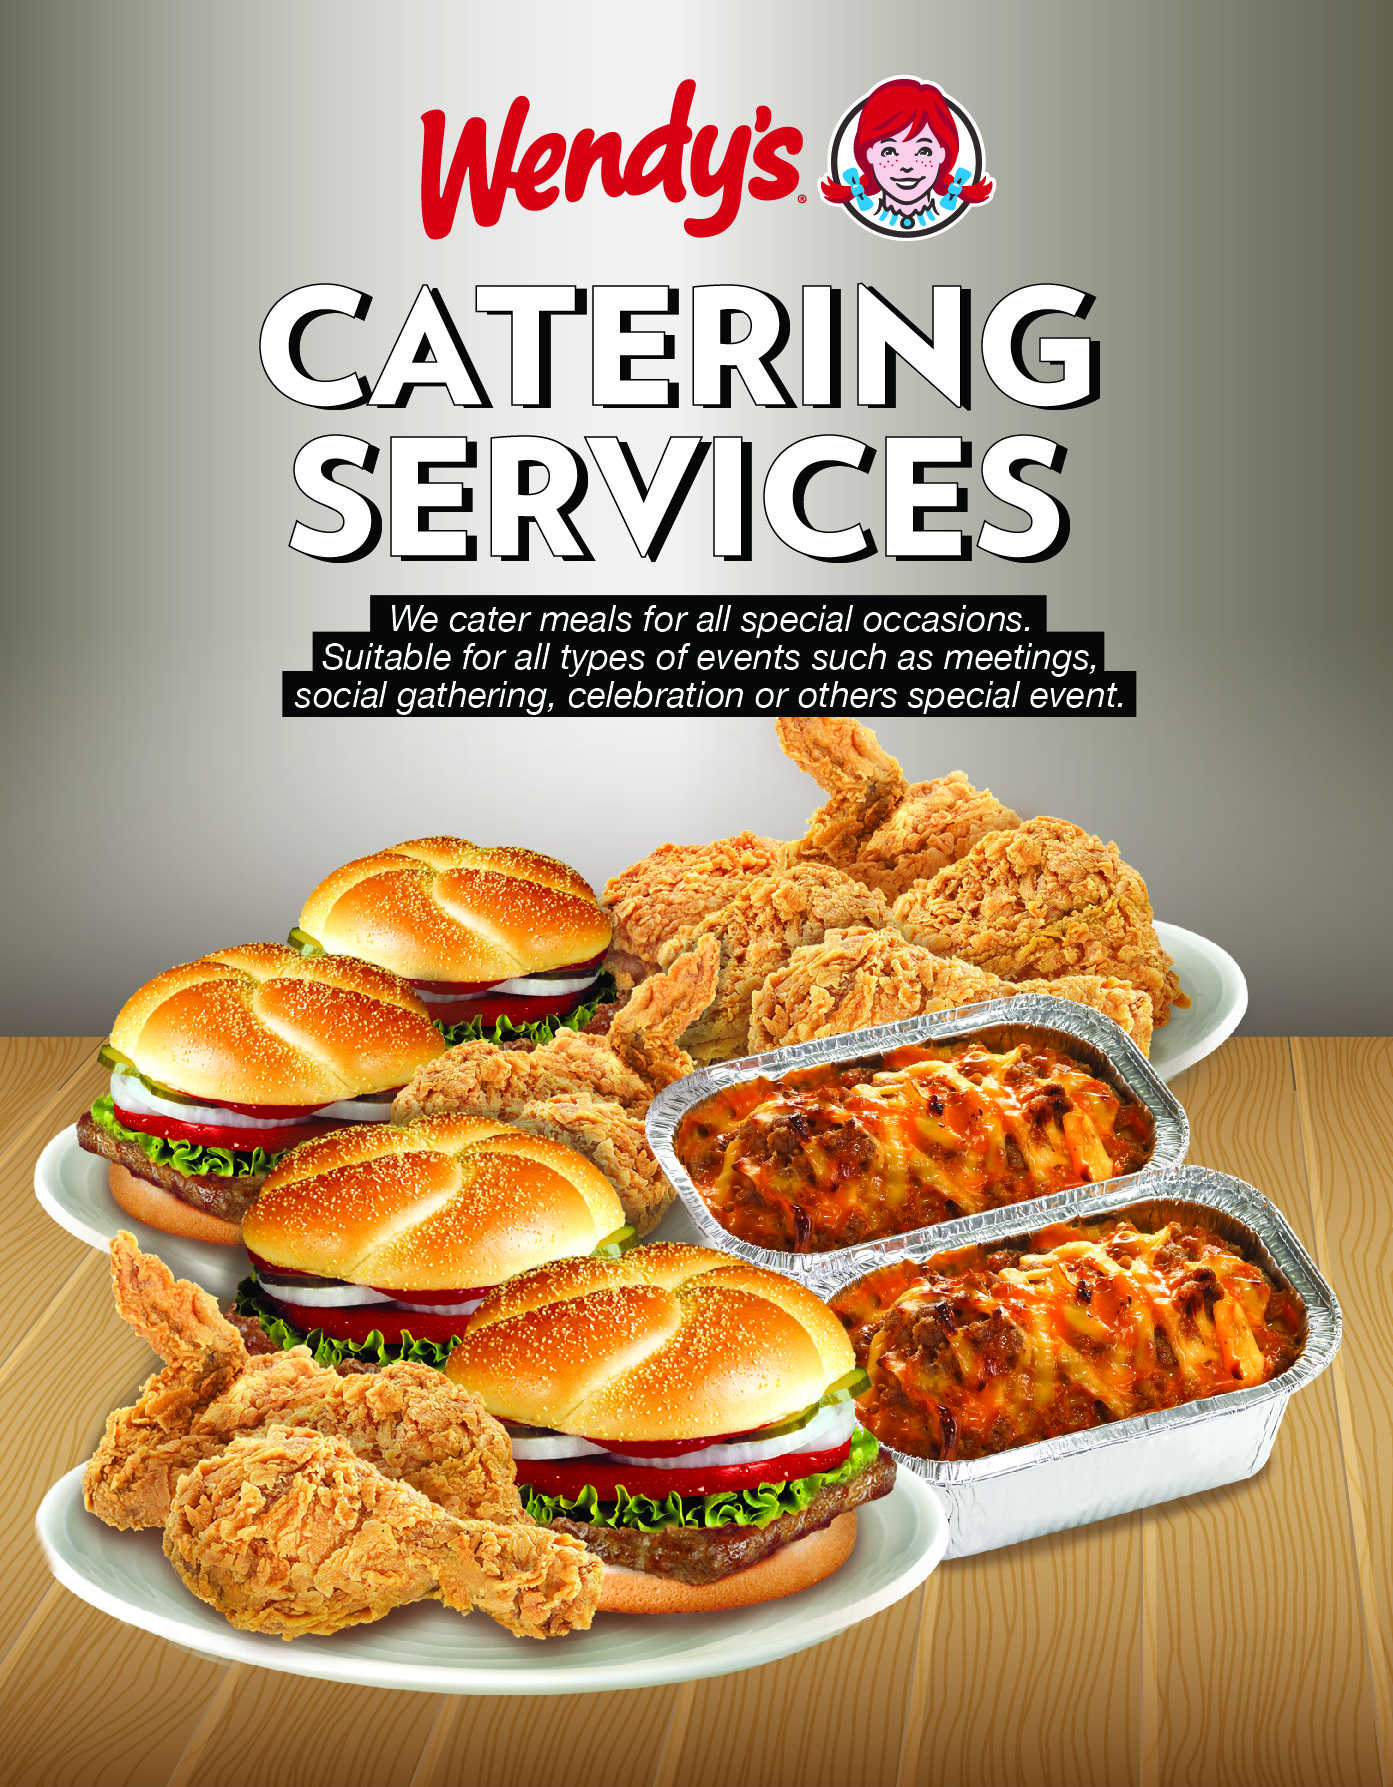 PROMO_WEB_CATERING_SERVICES_1393X1787_JUL16-01.jpg